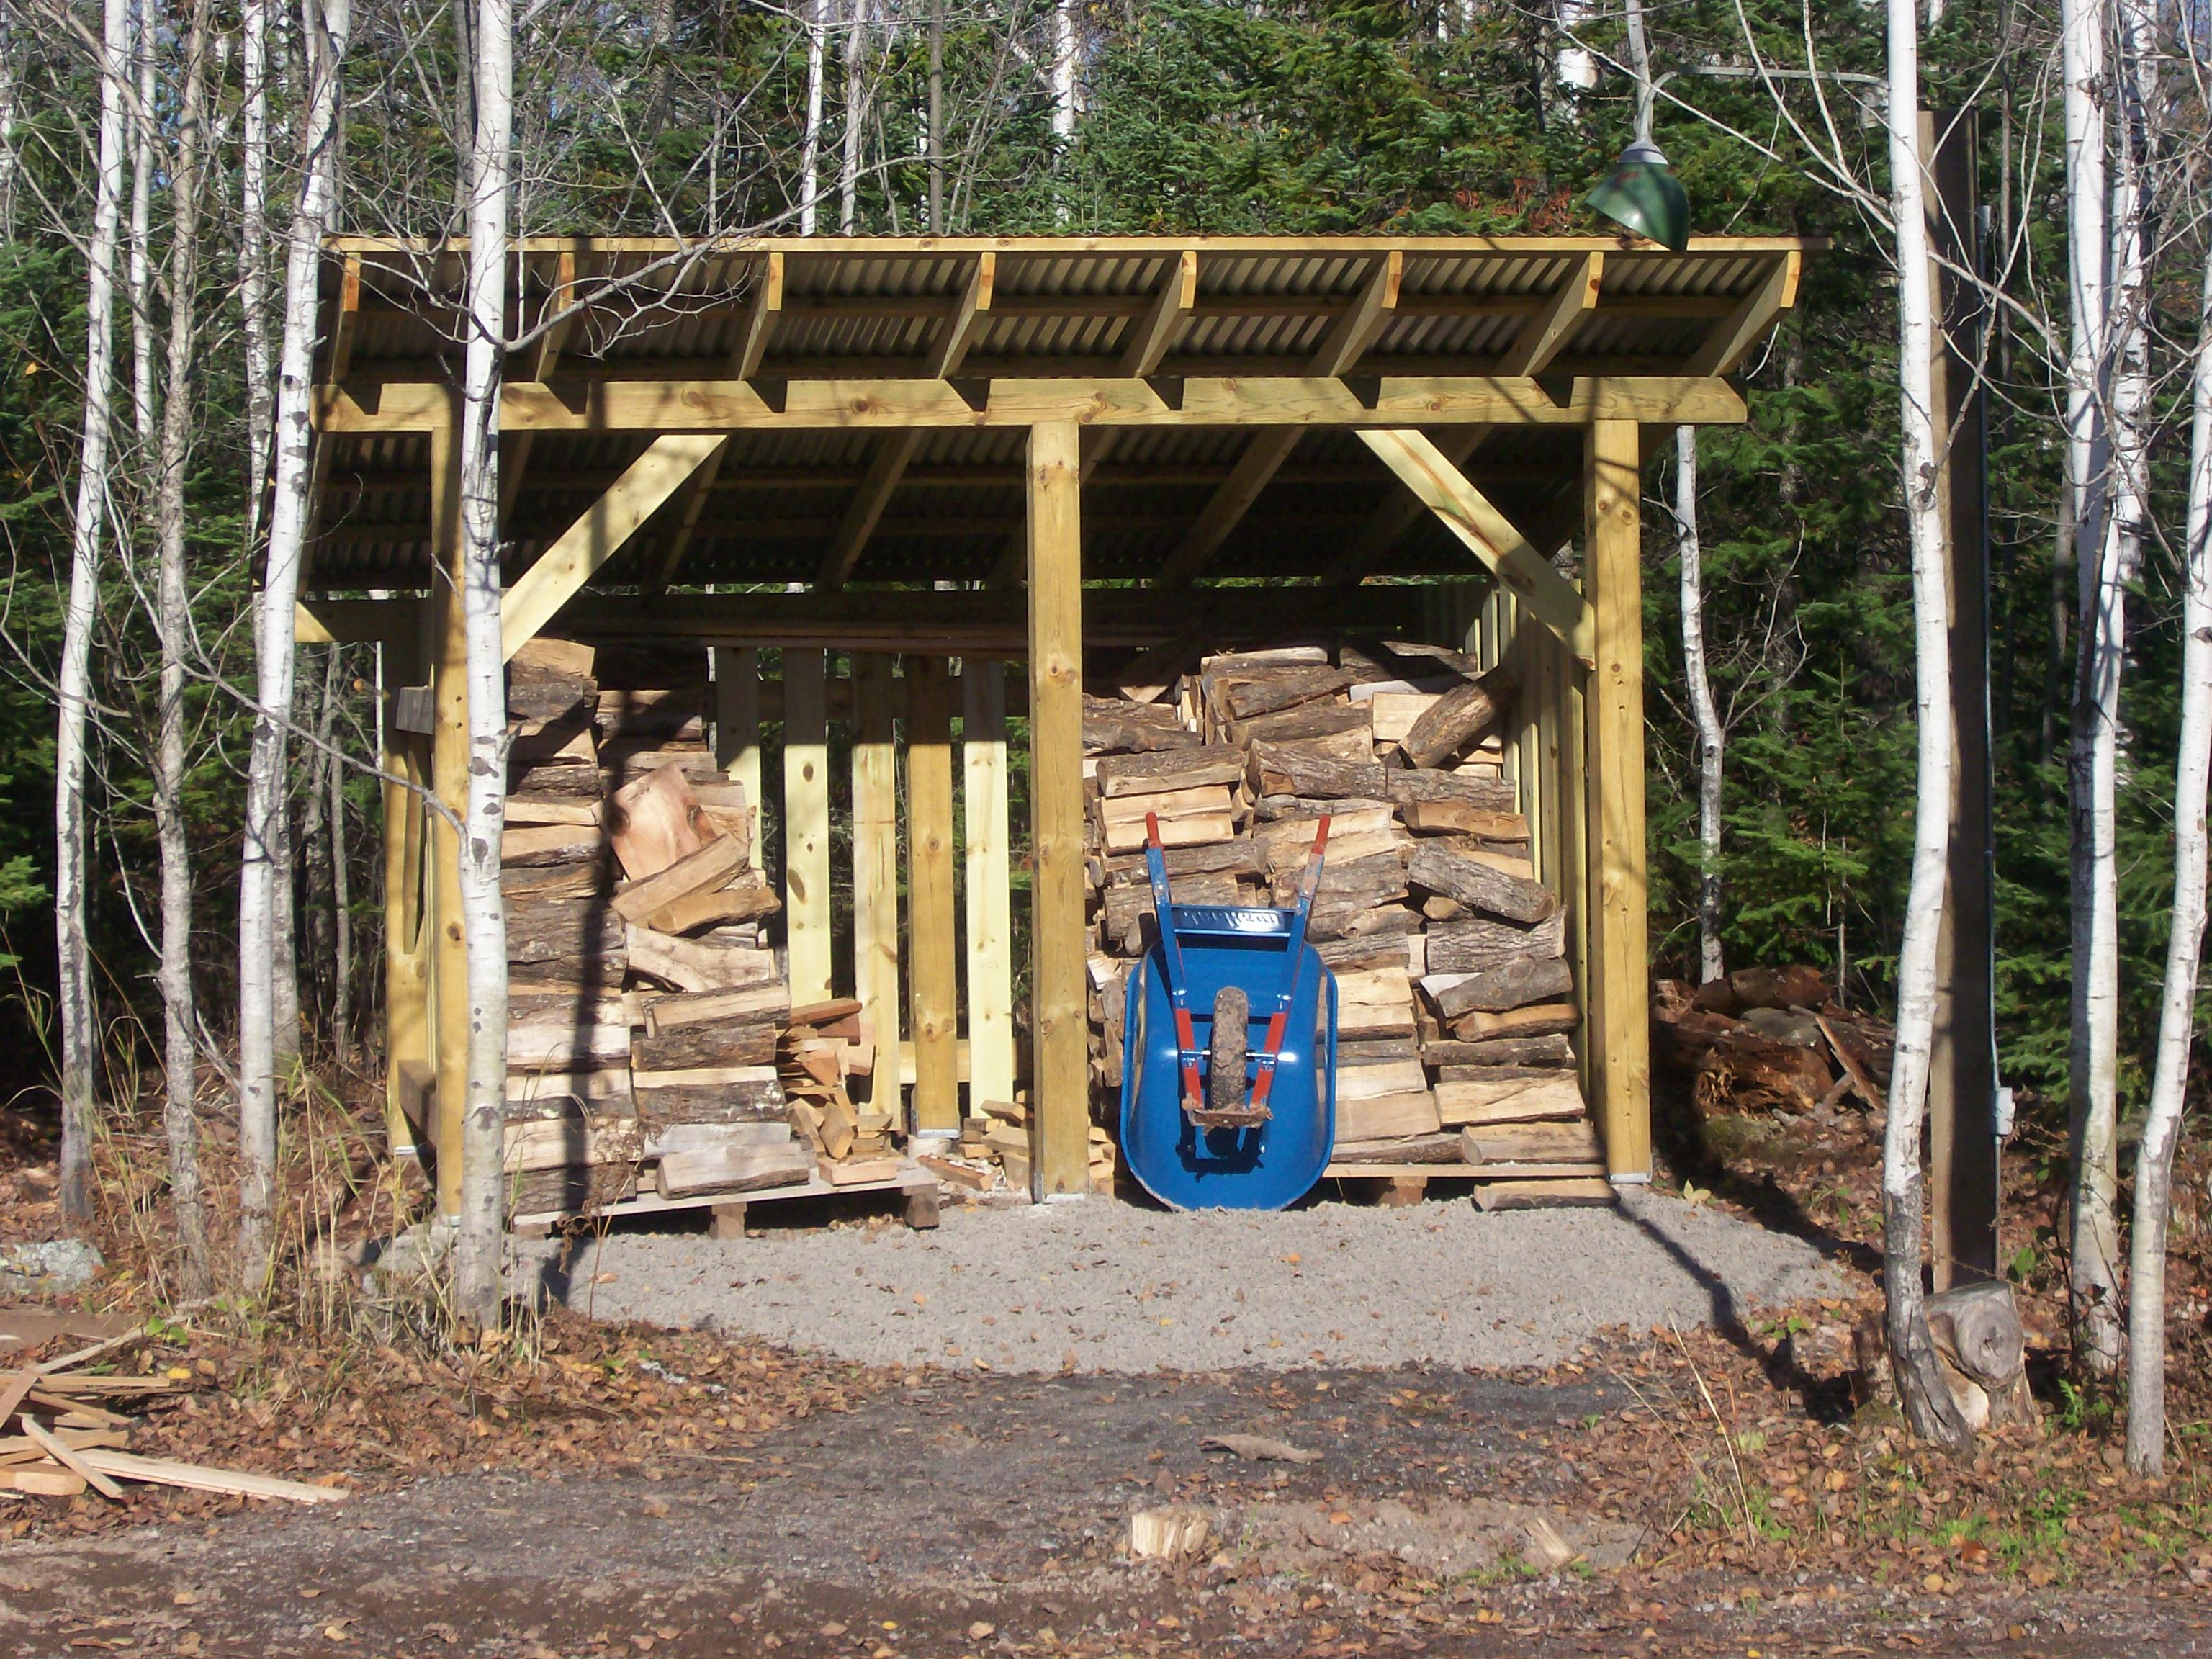 Wood Sheds Designs : Prefab Storage Shed Benefits | Shed Plans Kits